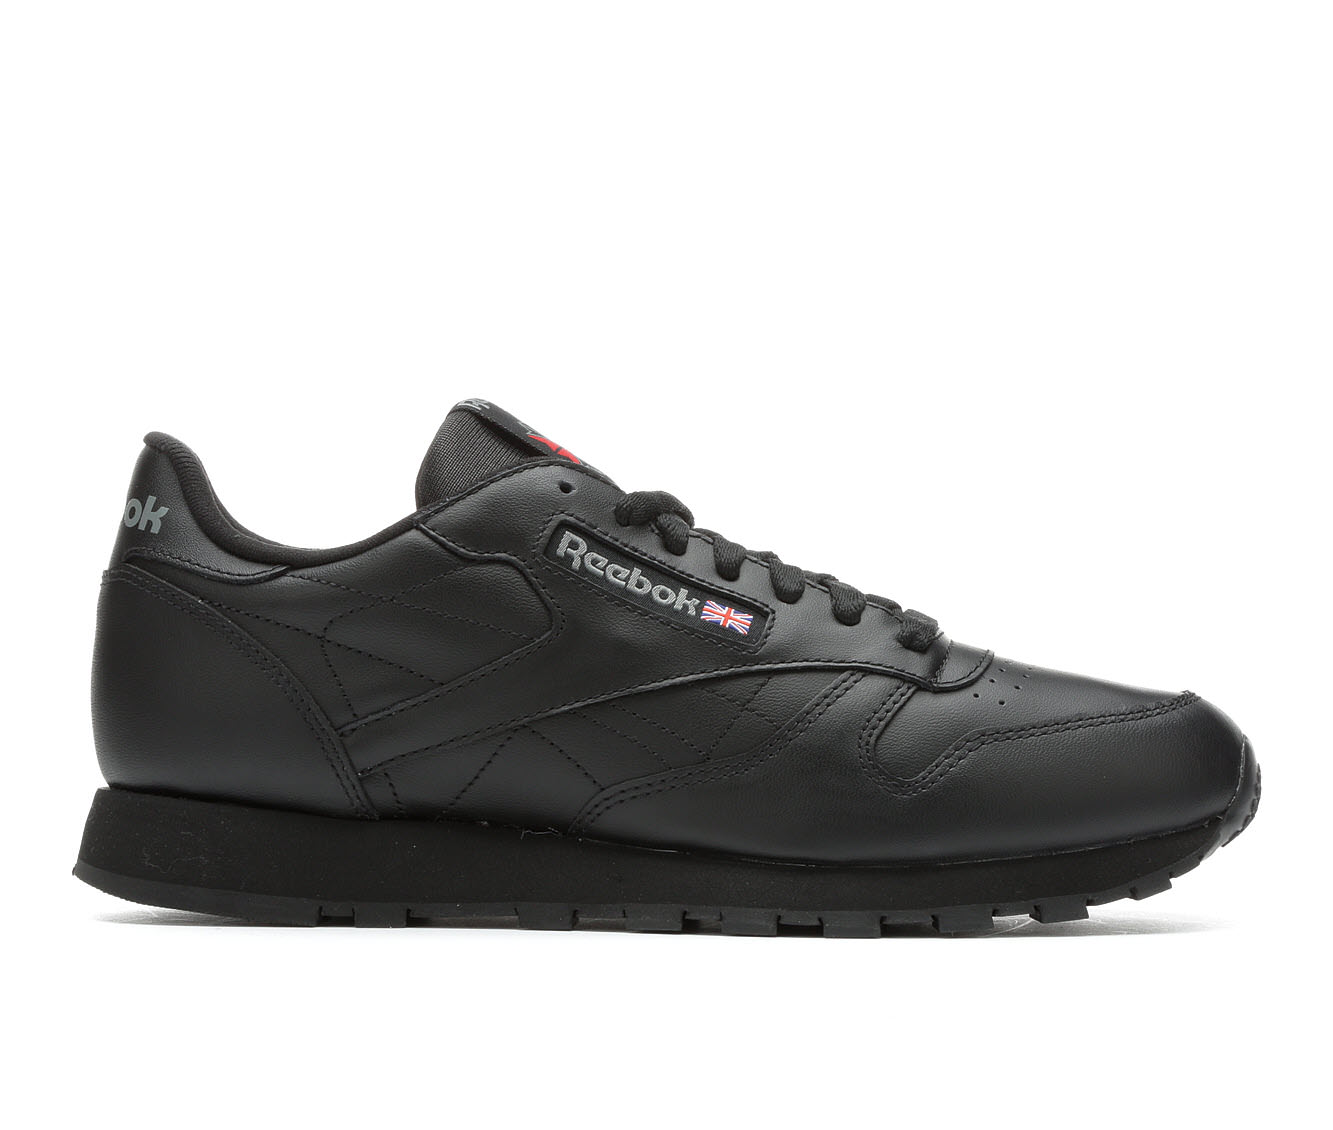 Men's Reebok Classic Leather Sneakers (Black - Size 11.5) 1722841